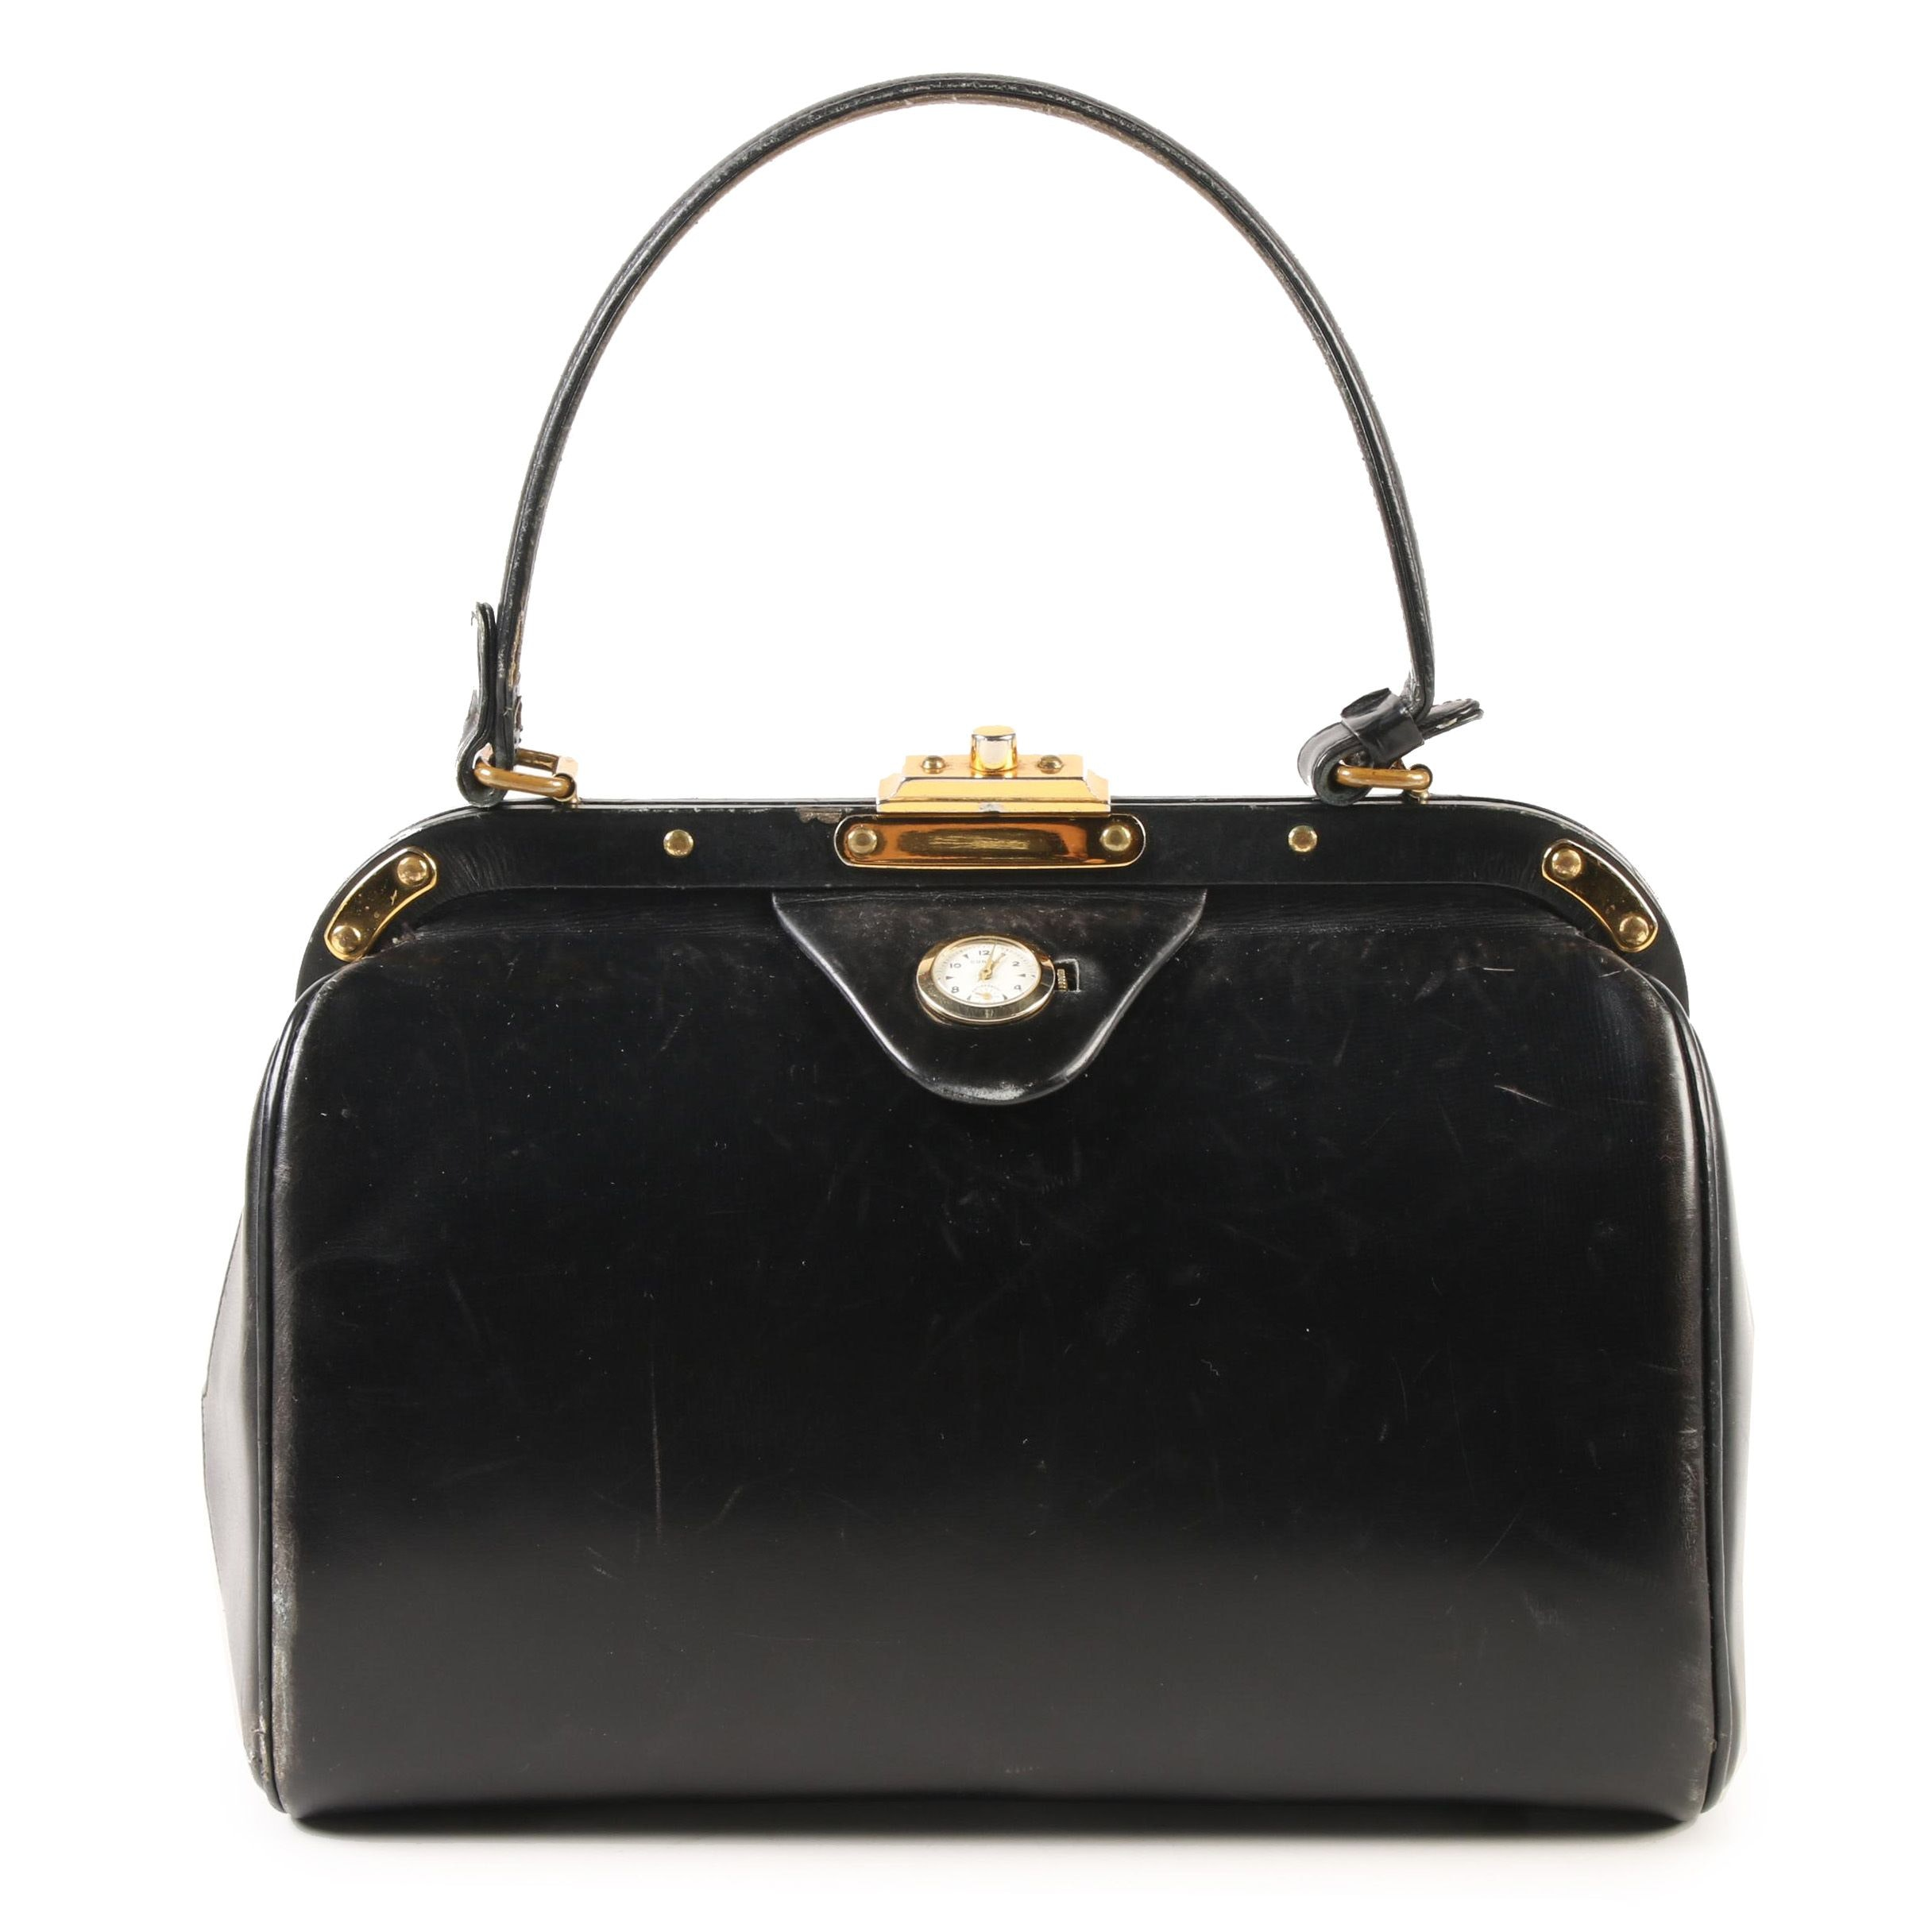 Dorian Mini Doctor Bag Satchel in Black Leather with Sheffield Watch, circa 1960